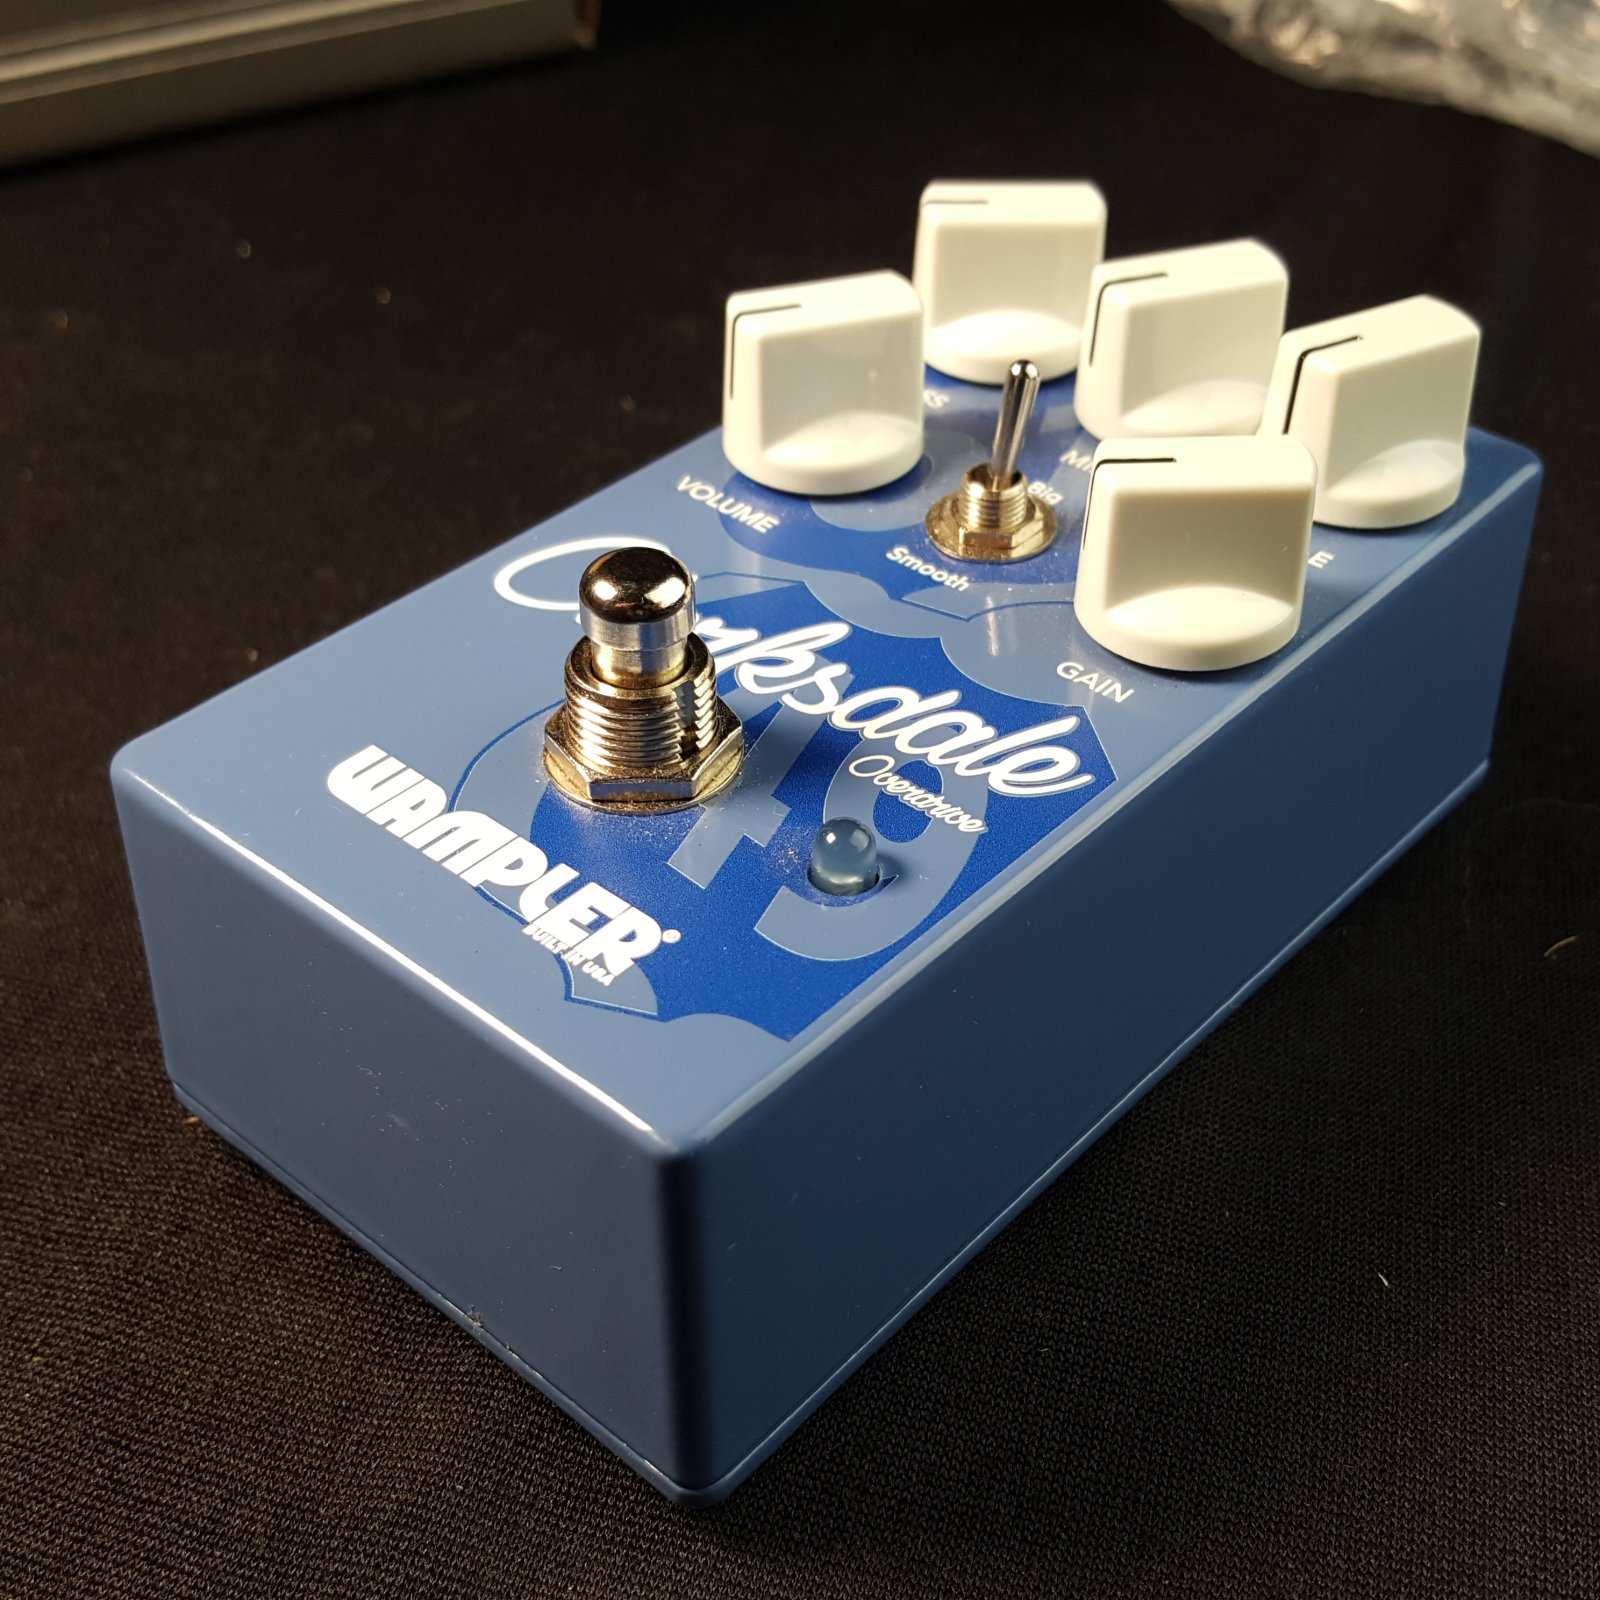 USED Wampler Clarksdale Overdrive Pedal